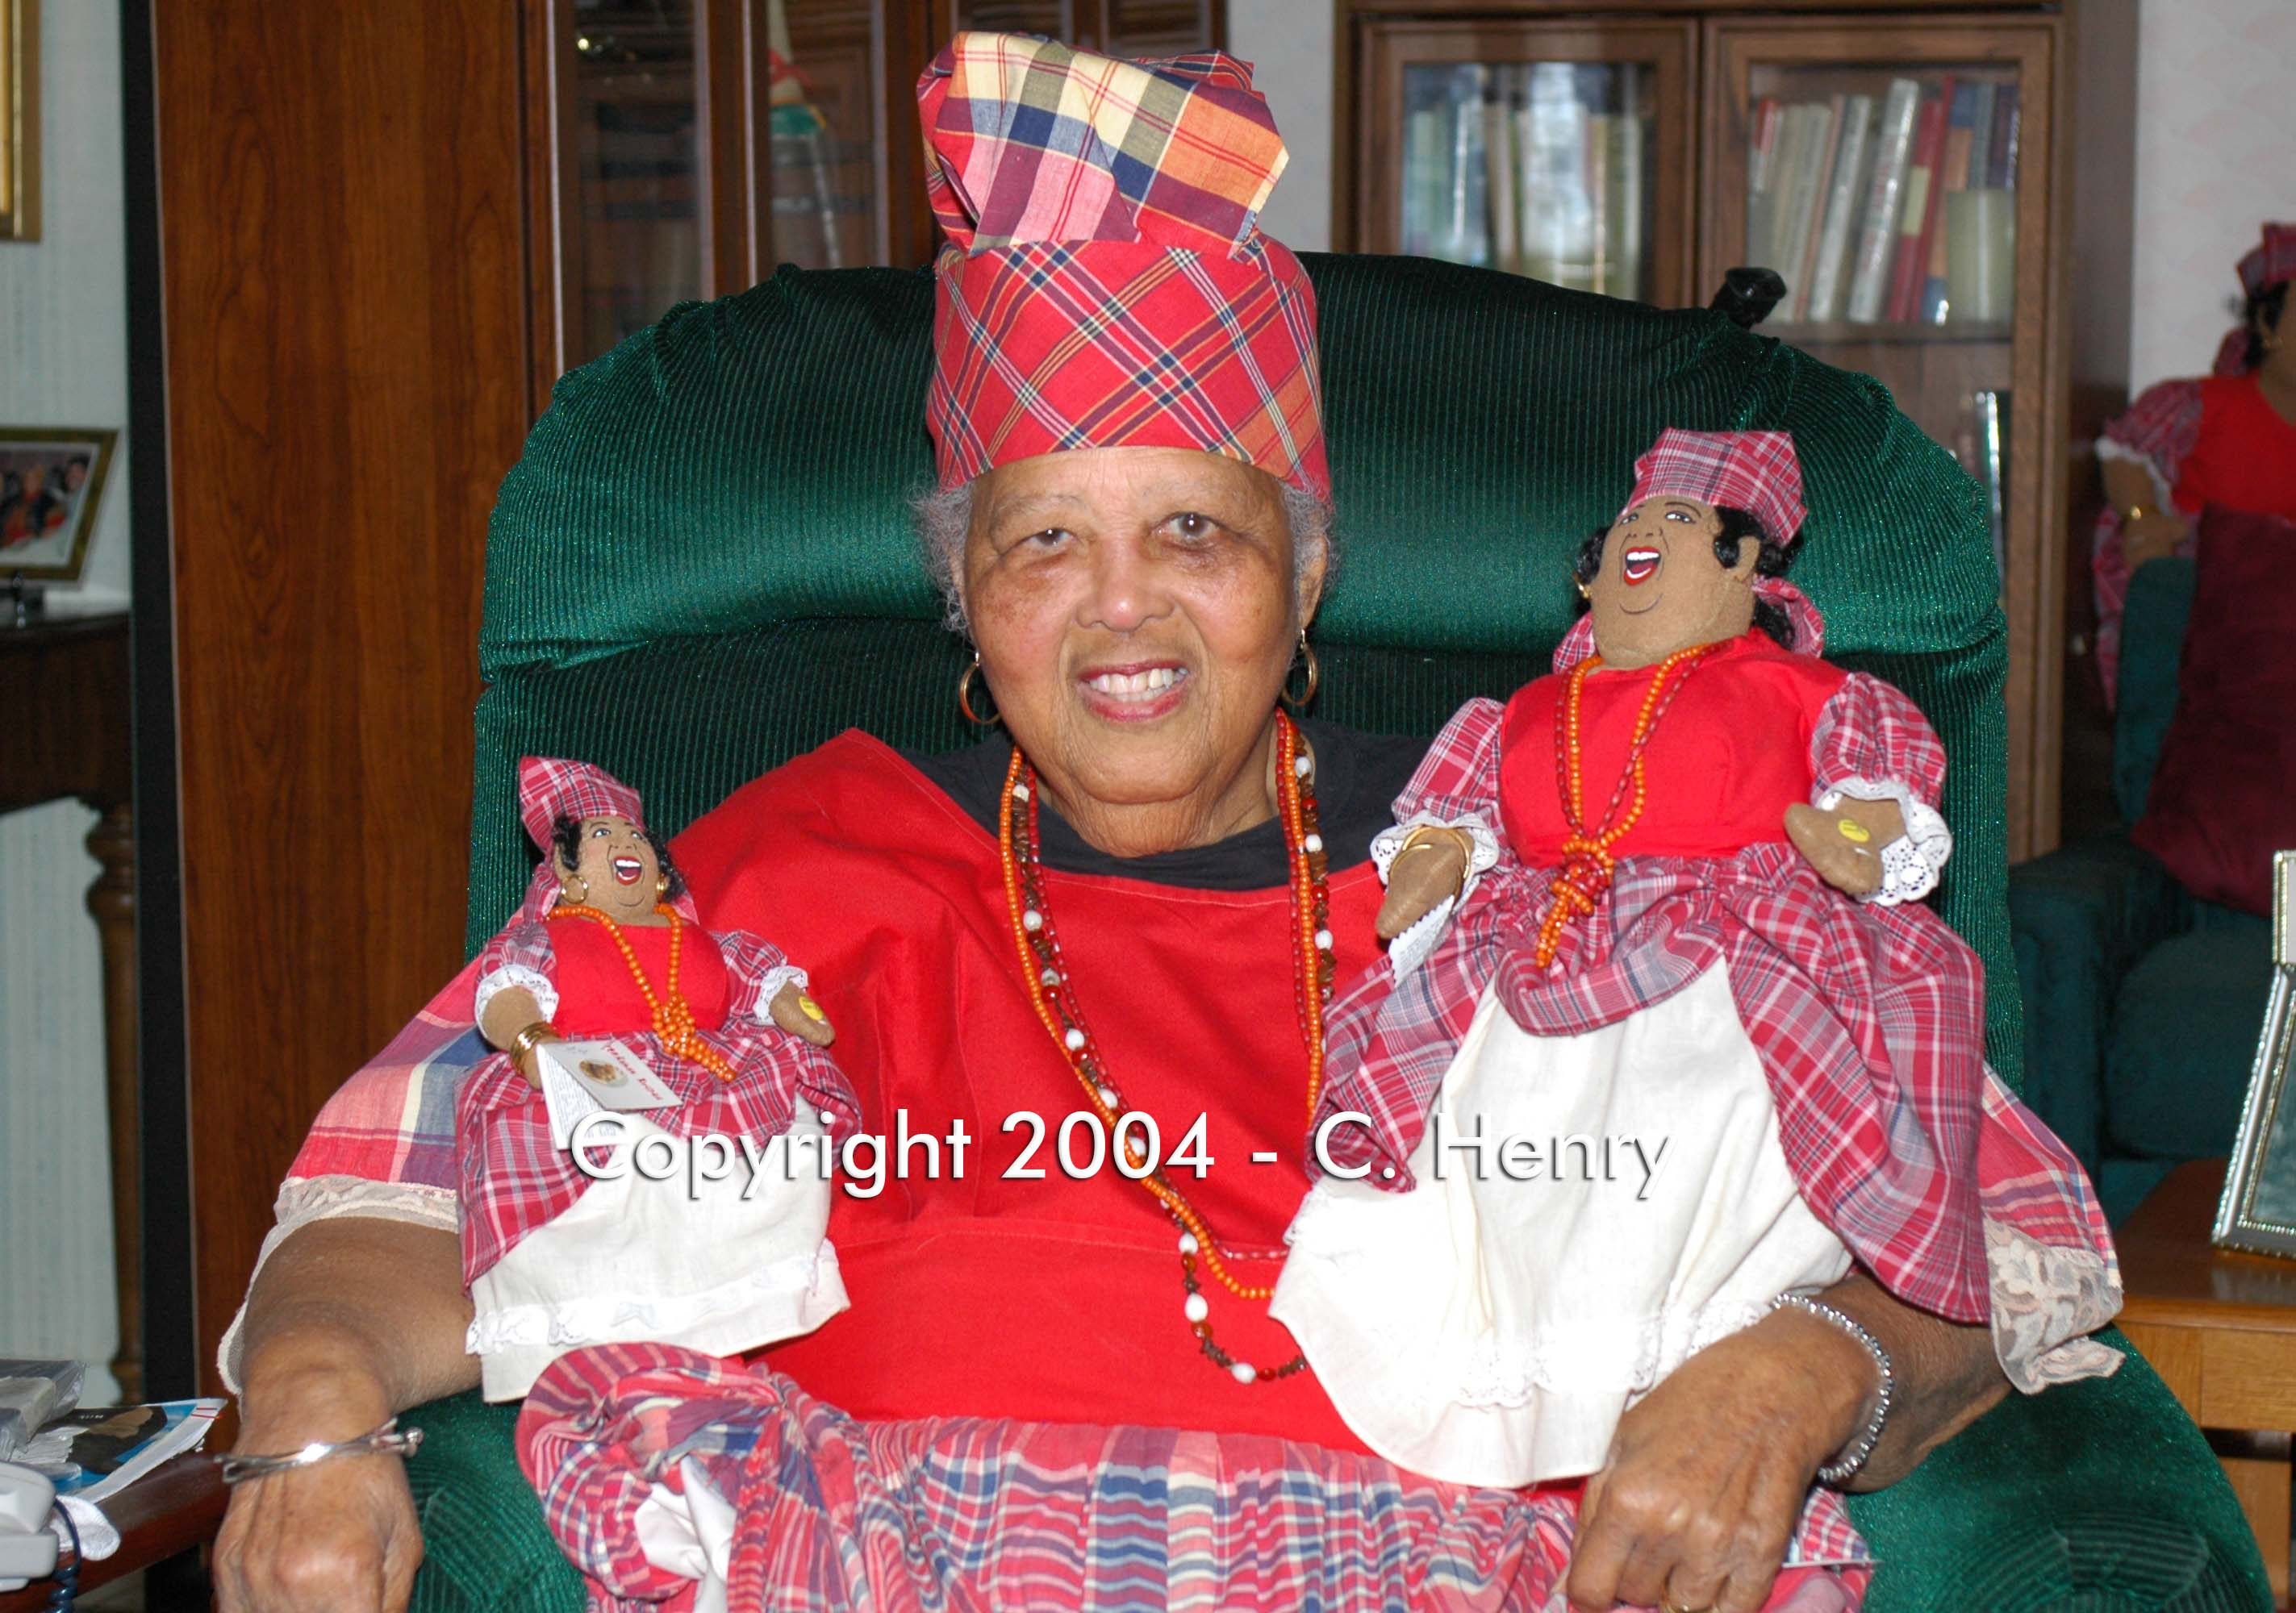 Miss Lou with dolls in bandanna outfits